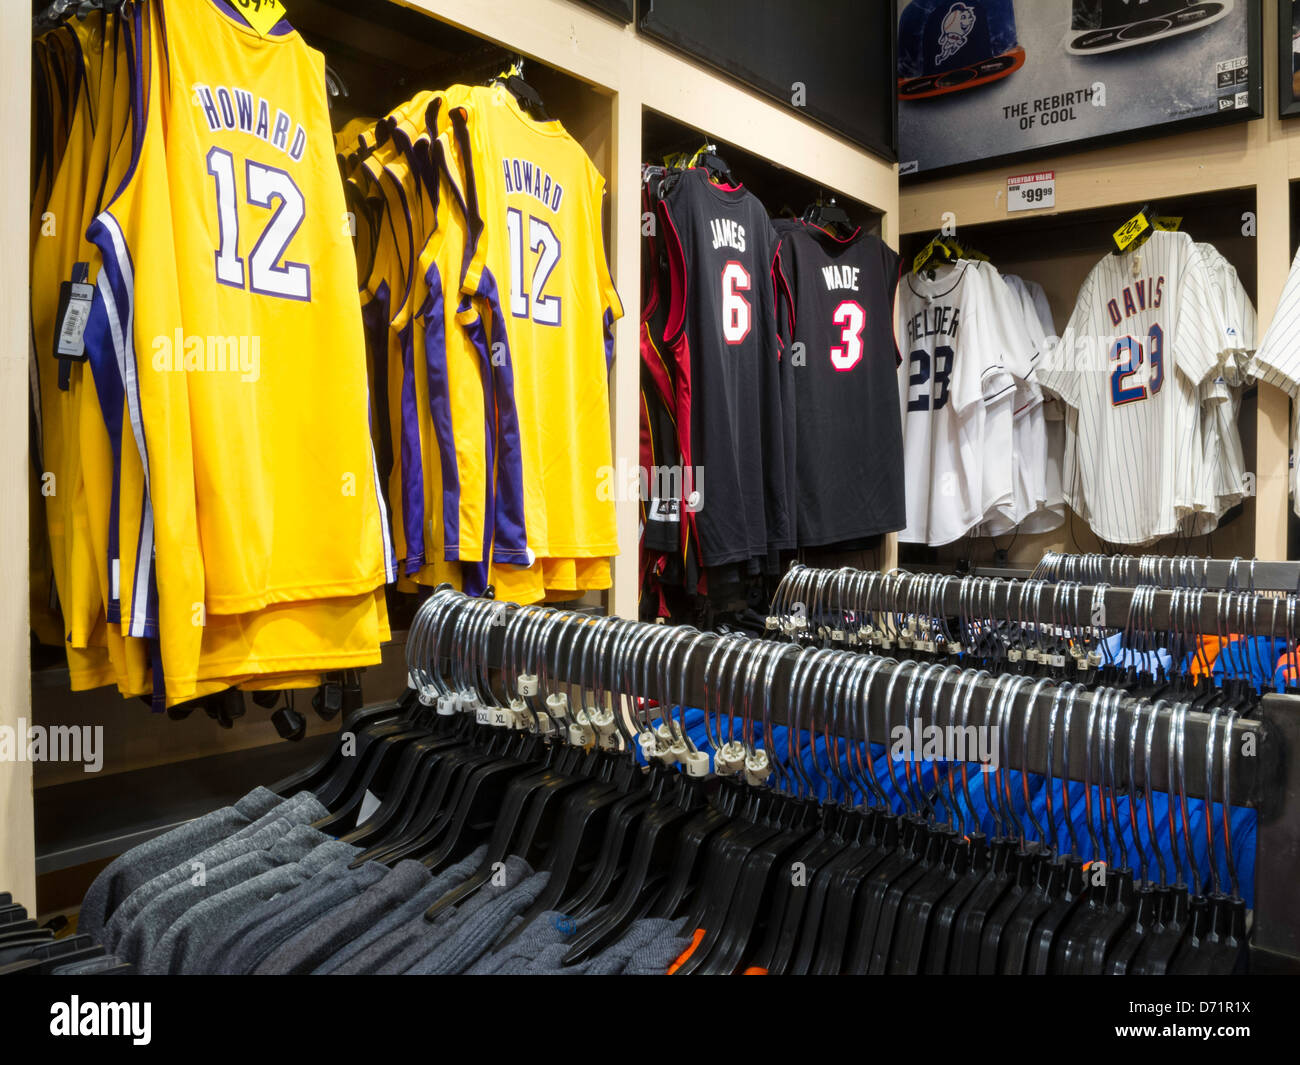 buy online 9c359 57f52 NBA Jerseys, Modell's Sporting Goods Store Interior, NYC ...